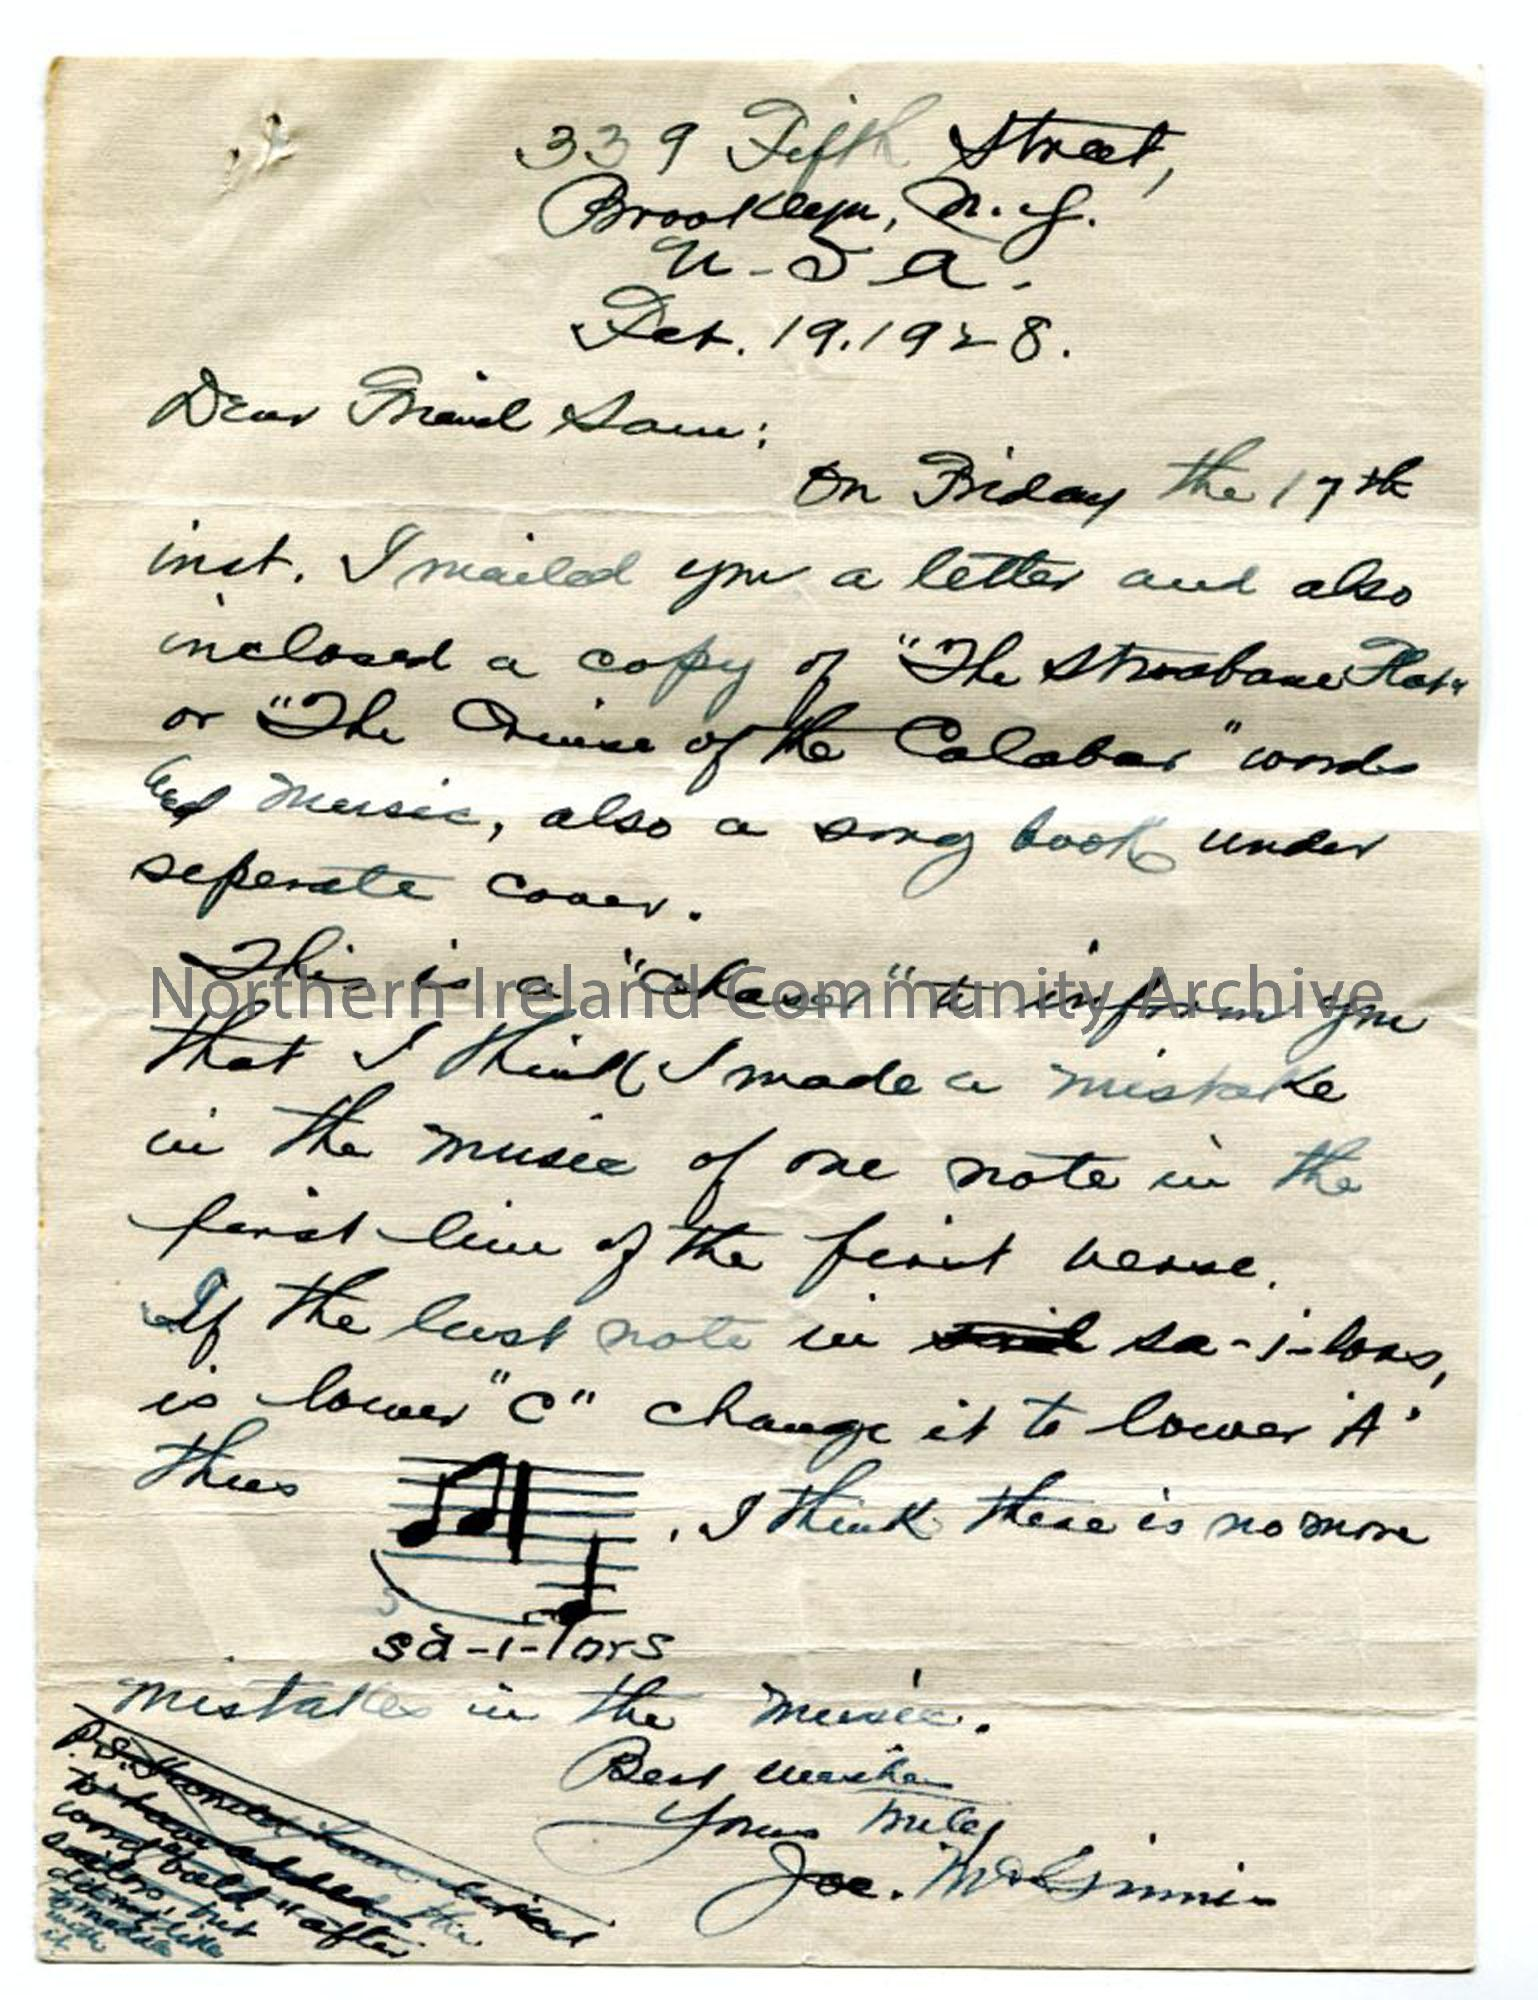 Letter from Joseph McGinnis, 19th February 1928